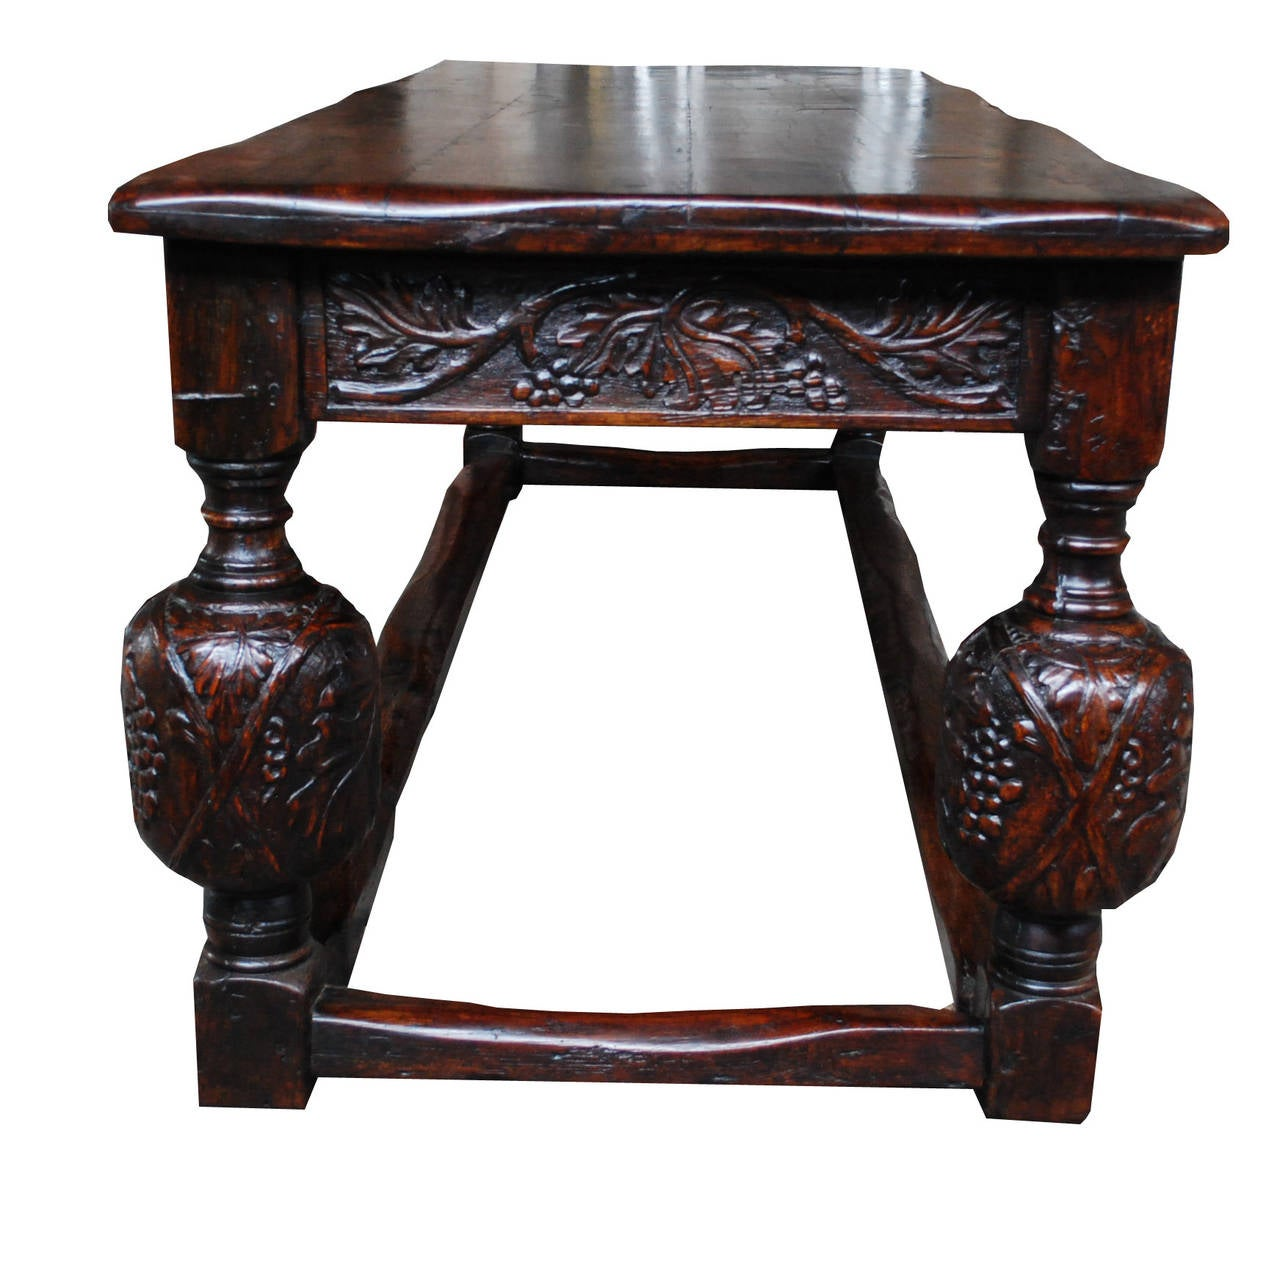 19th Century English solid oak handcarved refectory table For Sale 1